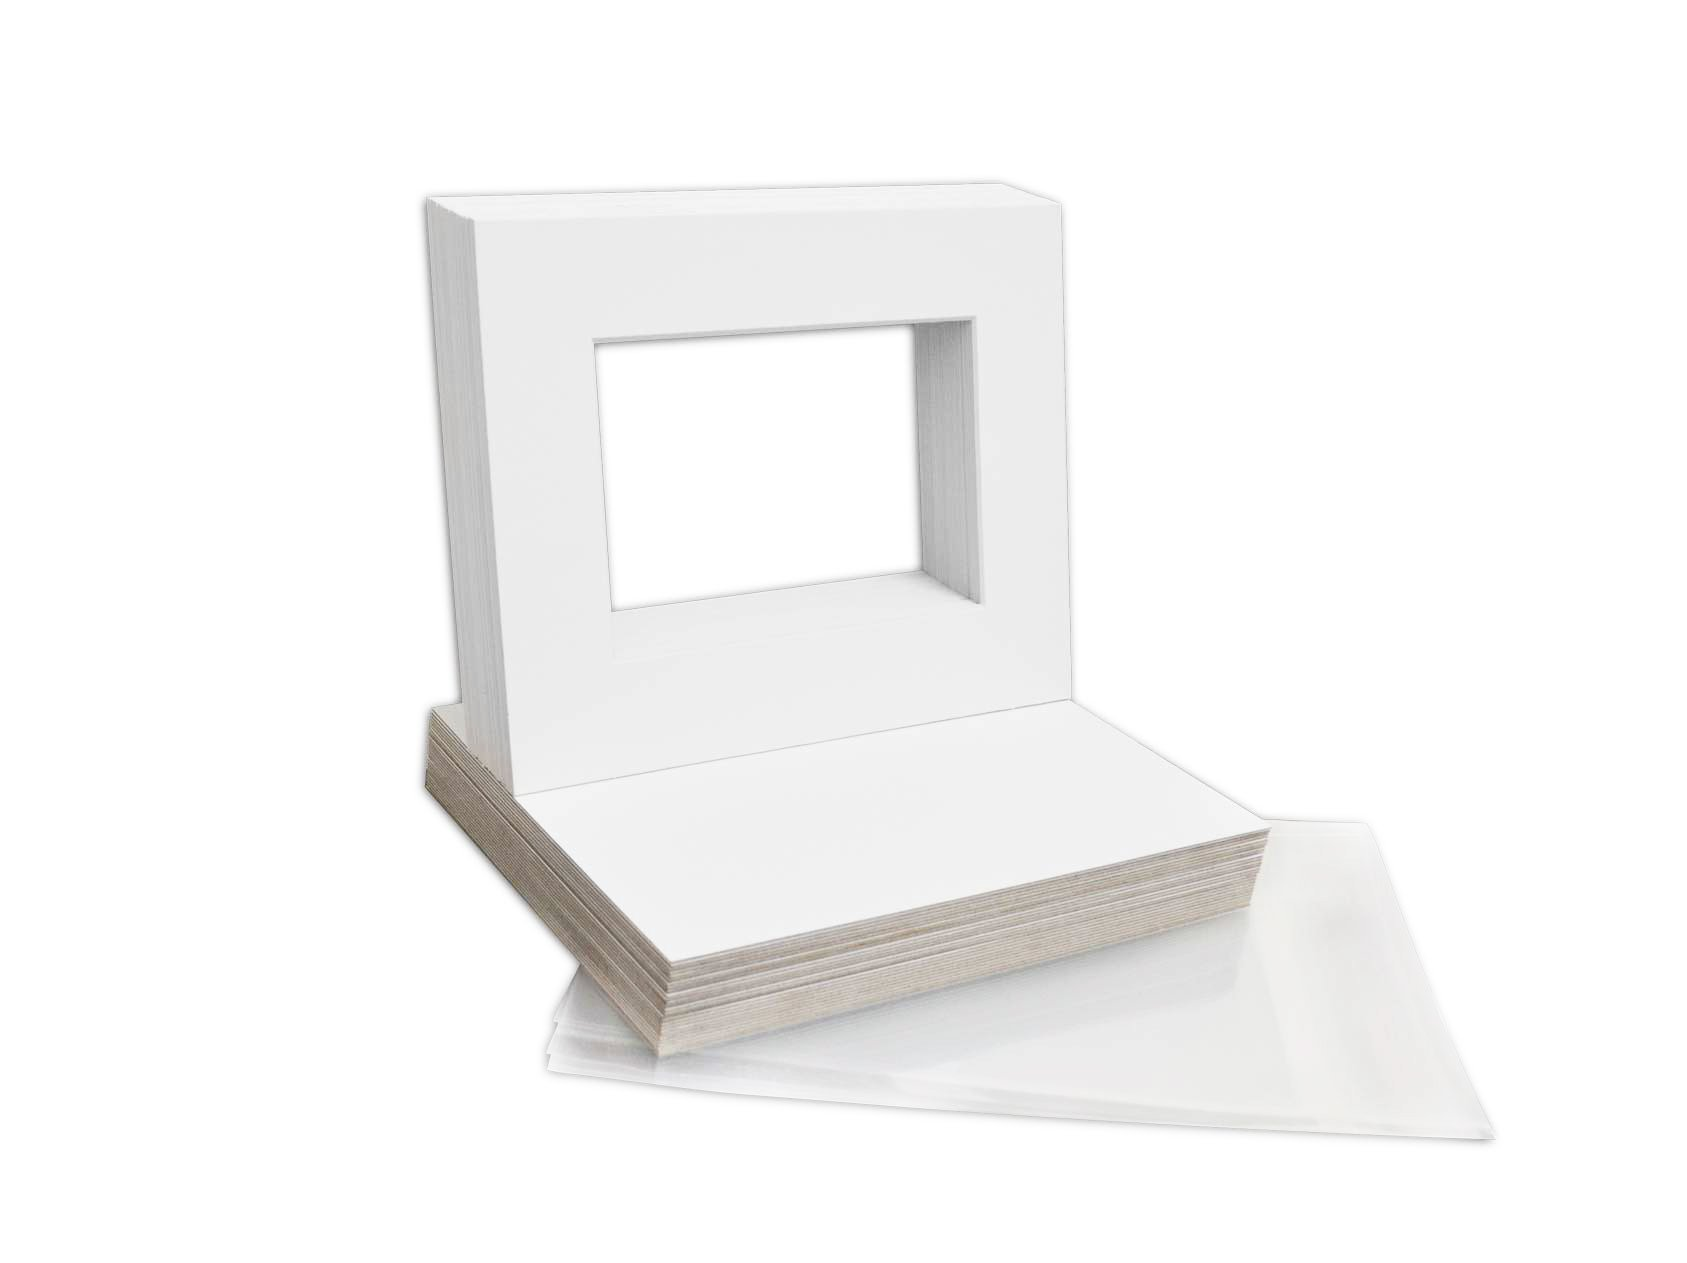 Mat Board Center, 8x10 Picture Mat Sets for 5x7 Photo. Includes a Pack of 50 White Core Bevel Pre-Cut White Core Matte & 50 Backing Board & 50 Clear Bags (White)